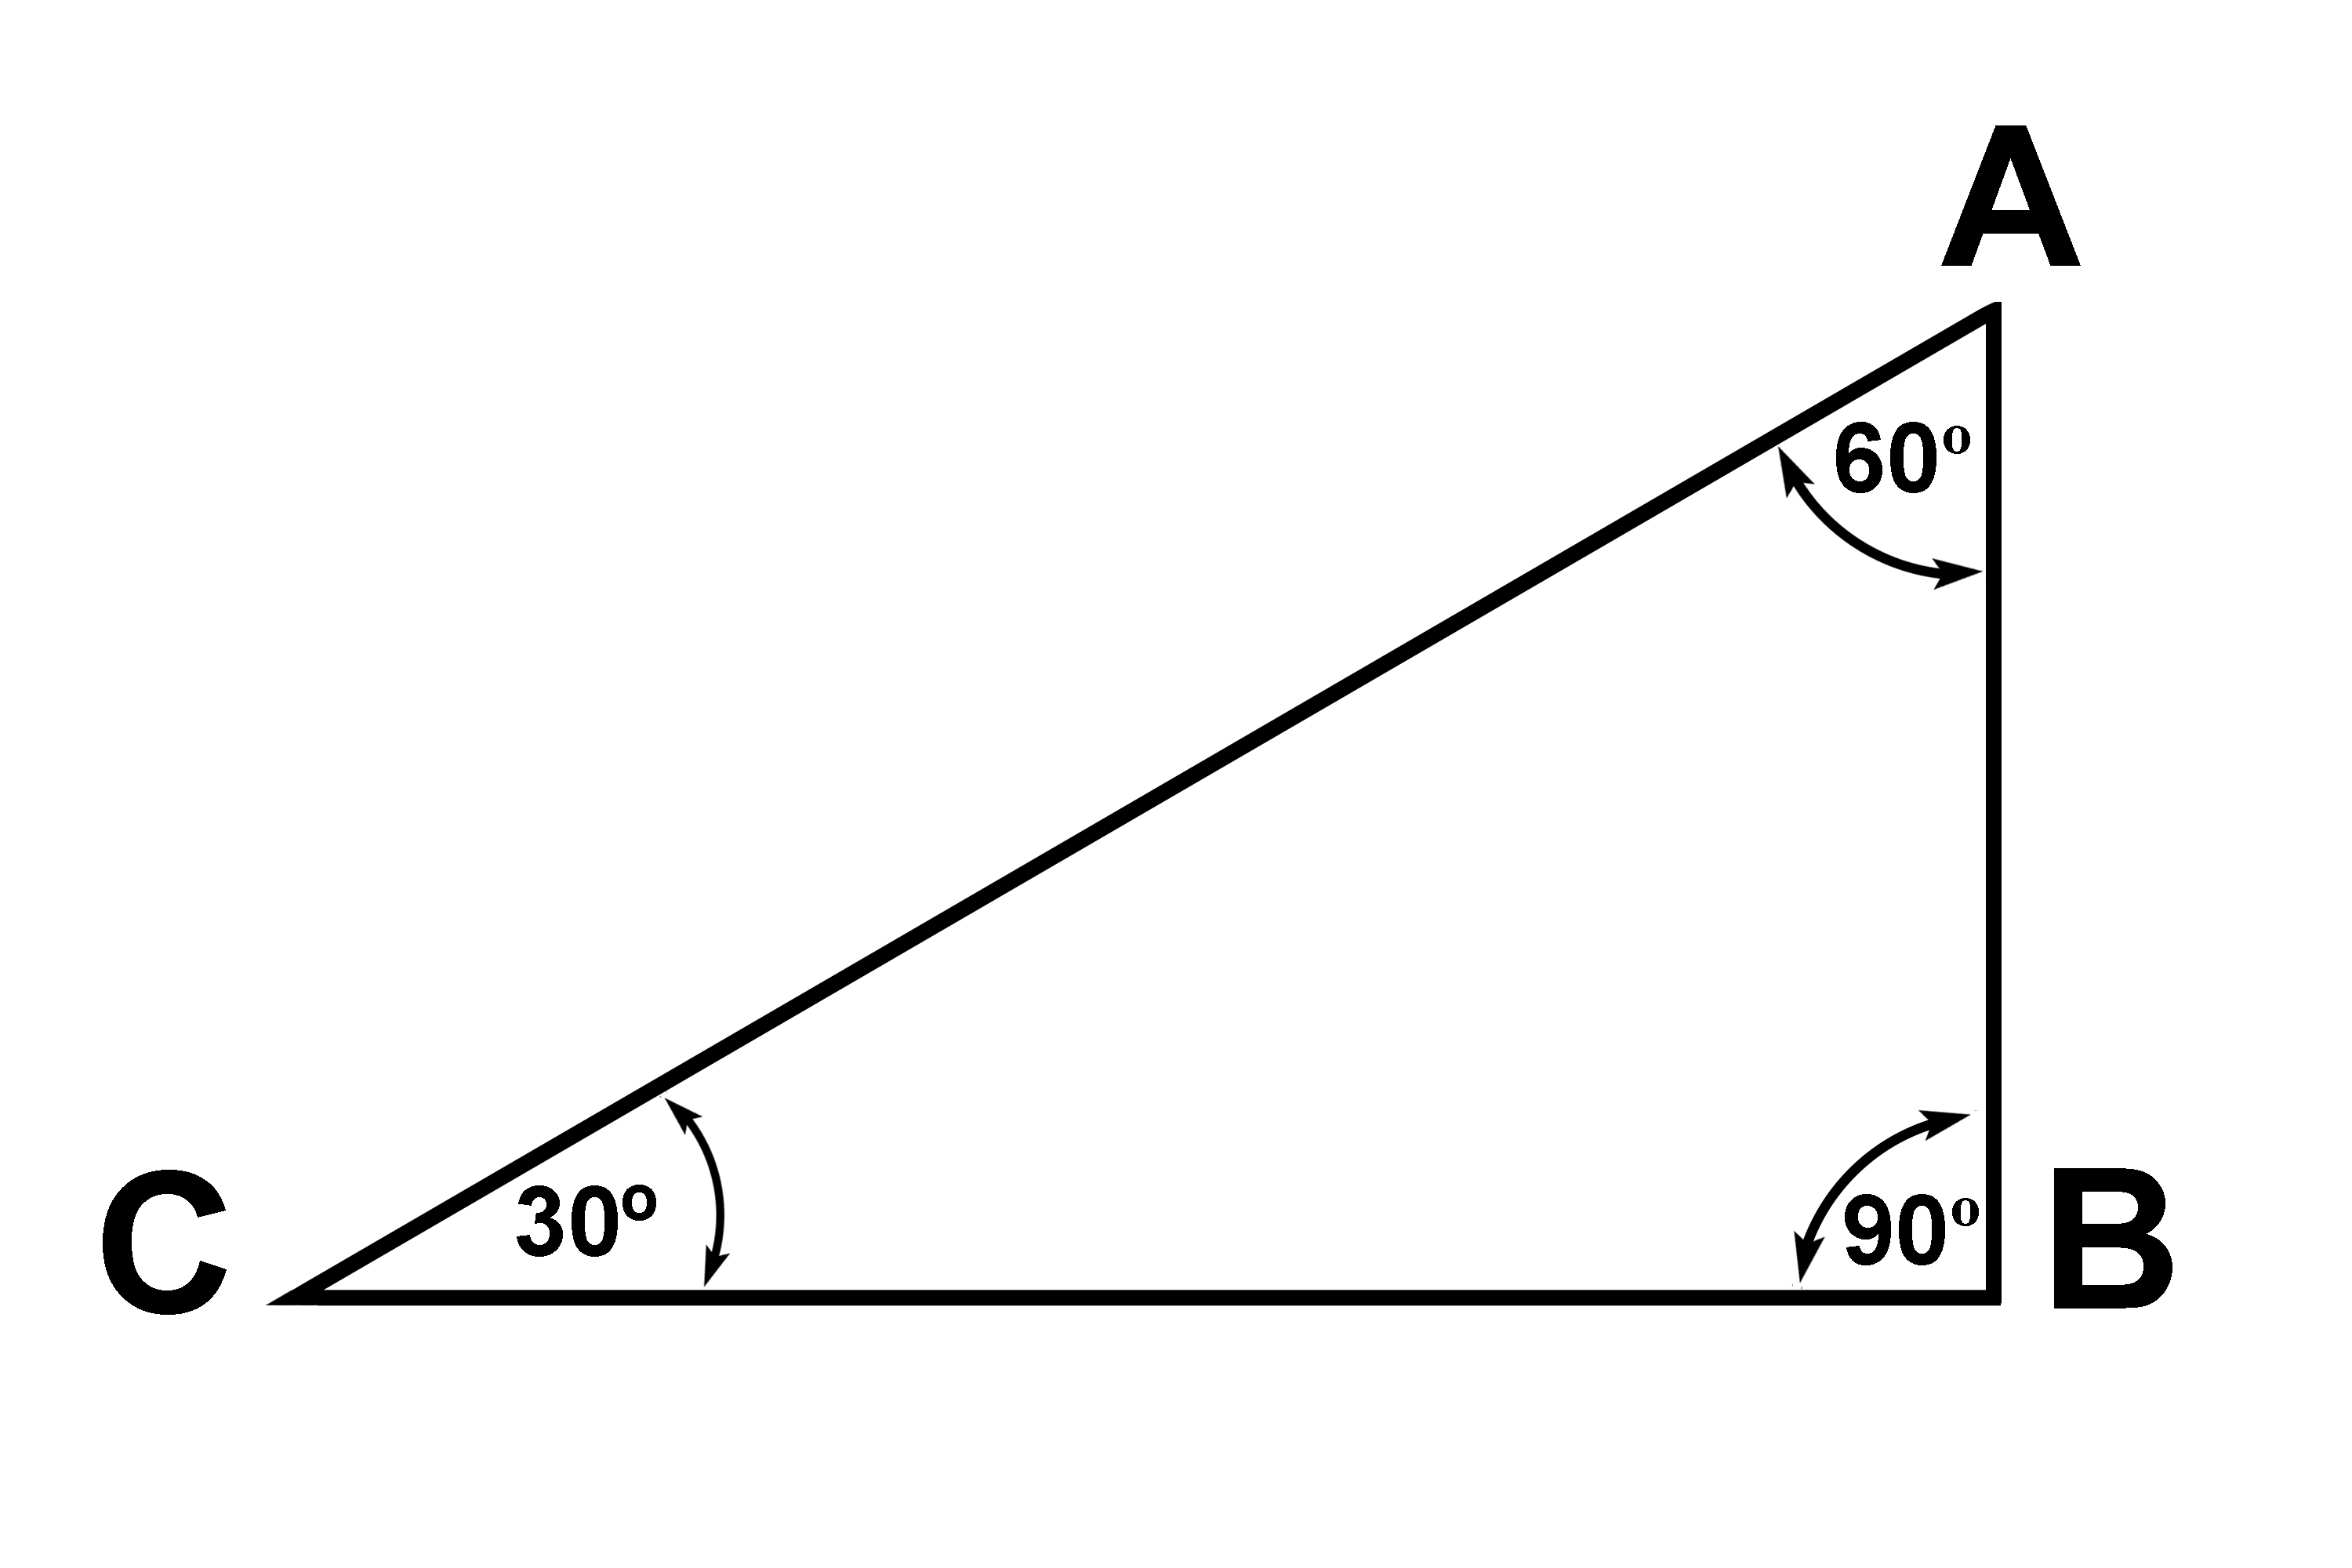 The total angles of a triangle equals 180 degrees